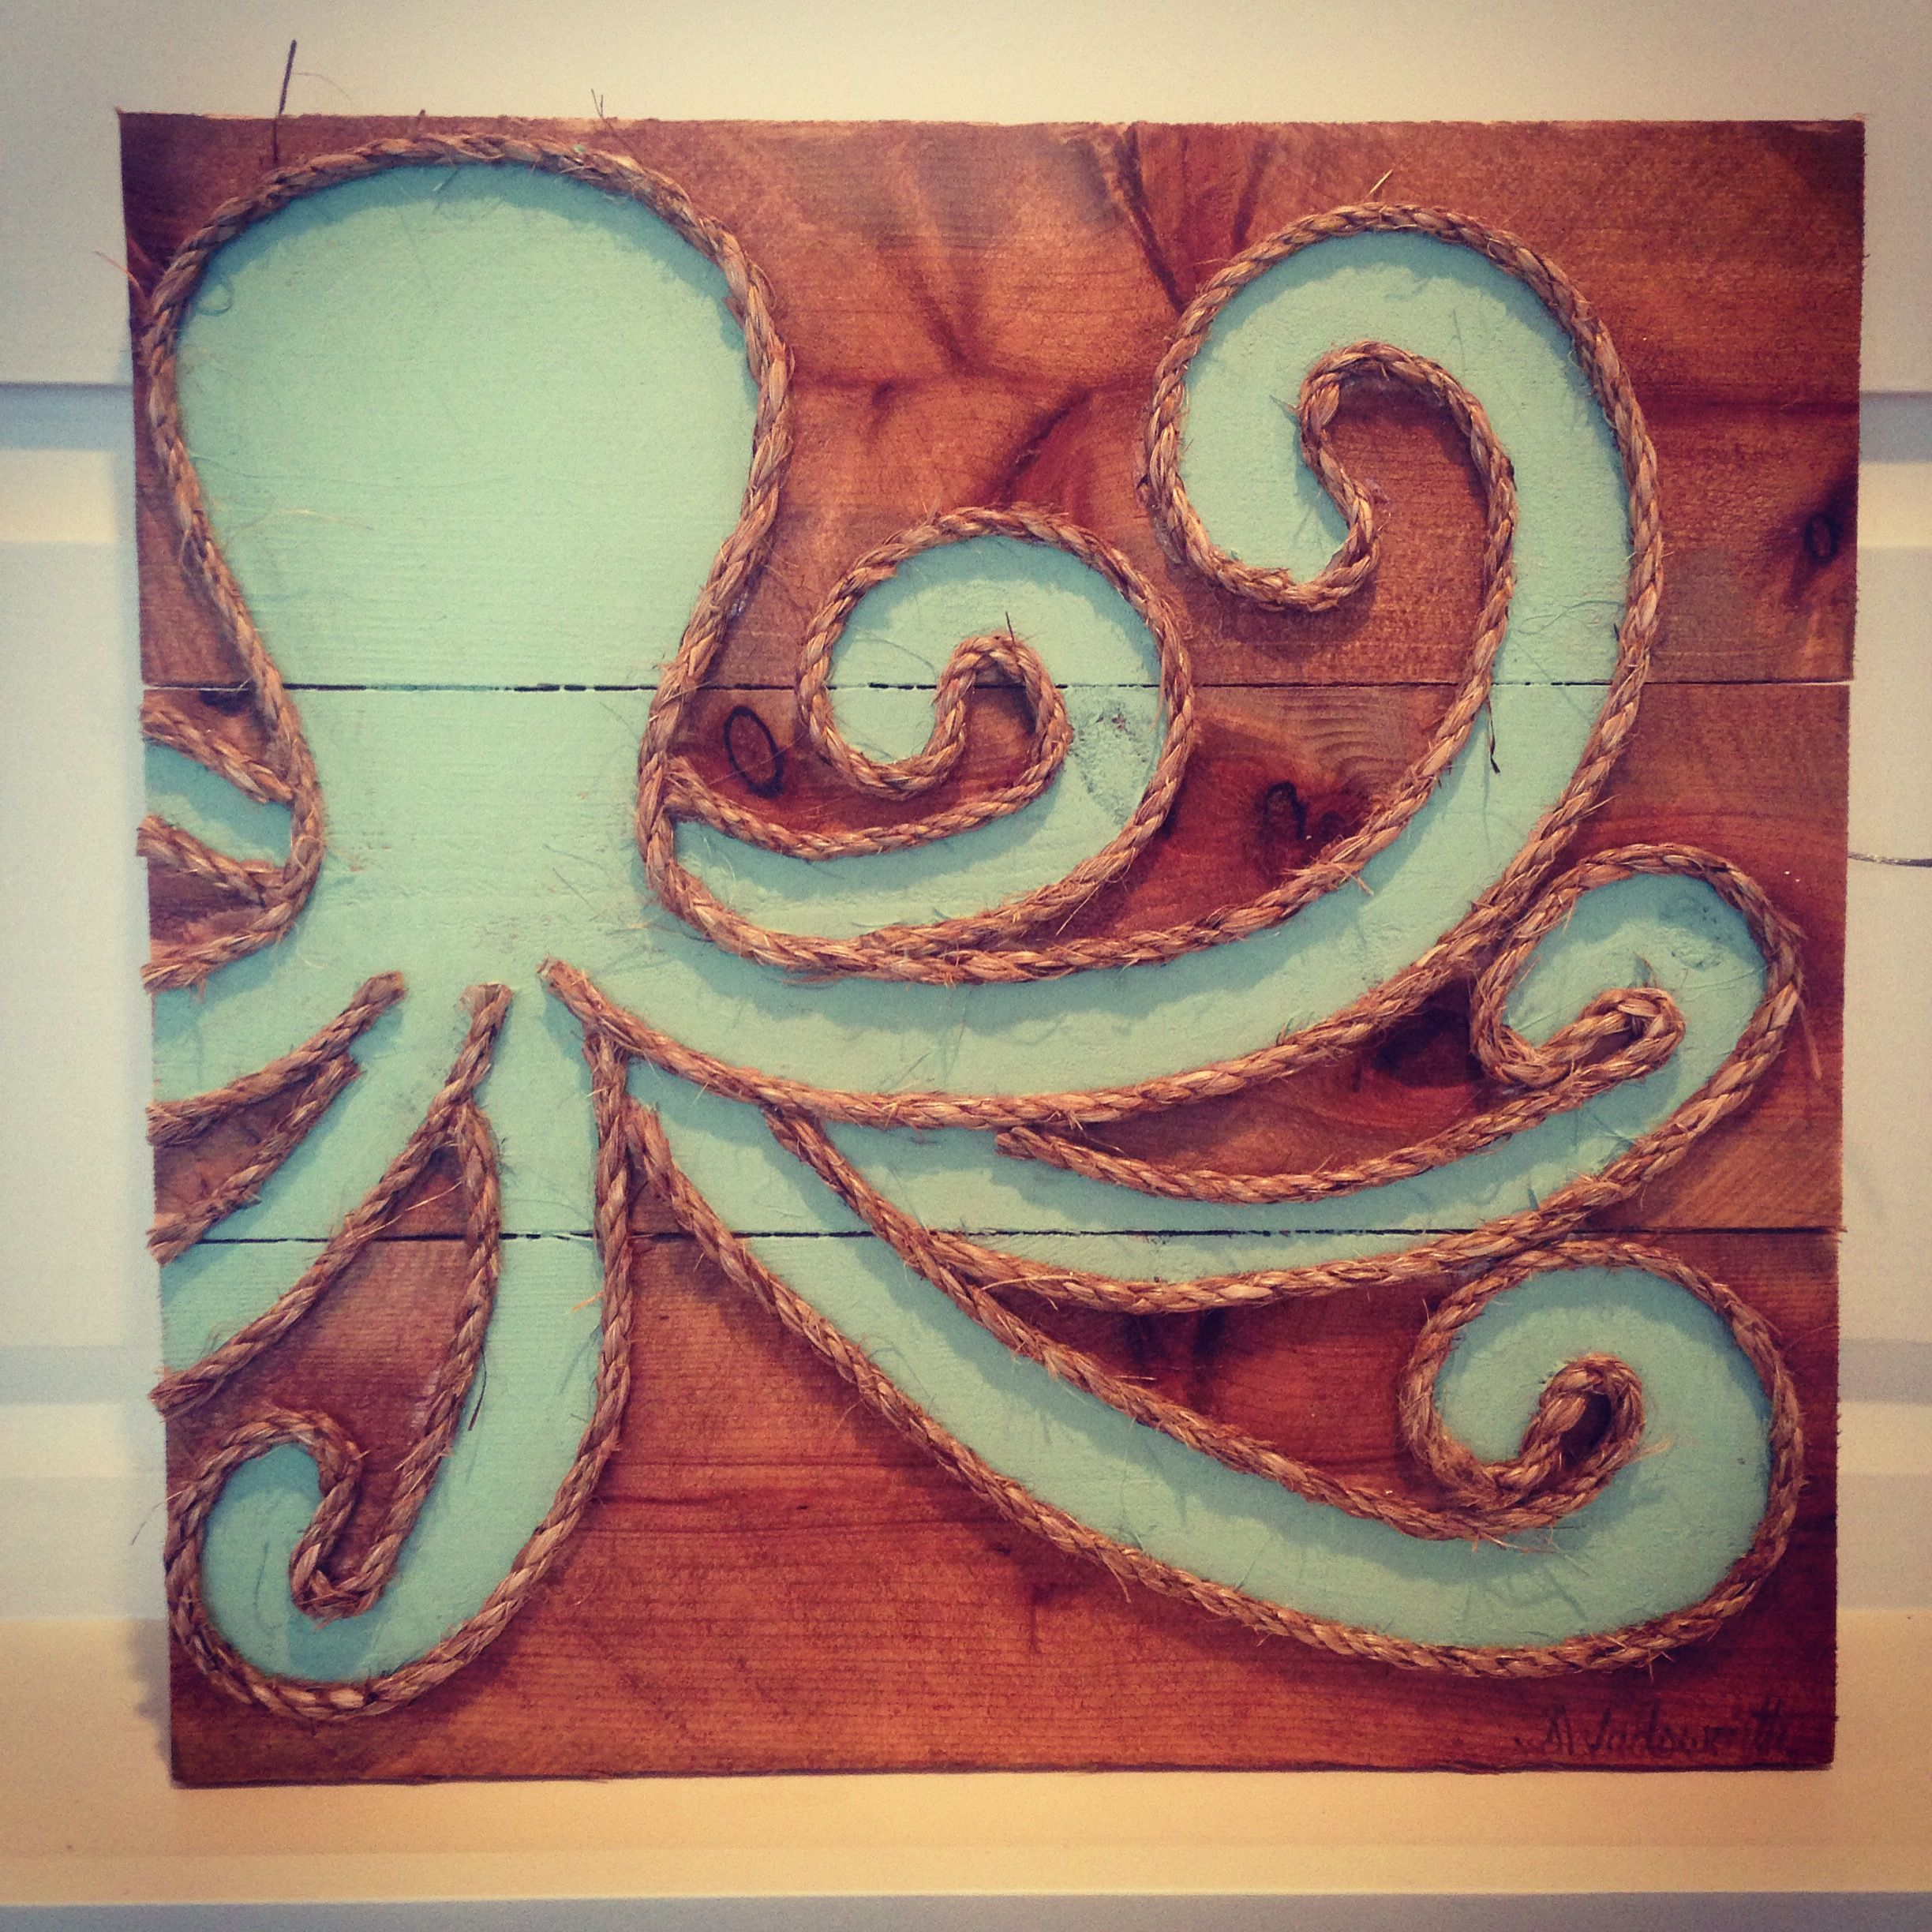 seaglass octopus made of on wood available at www